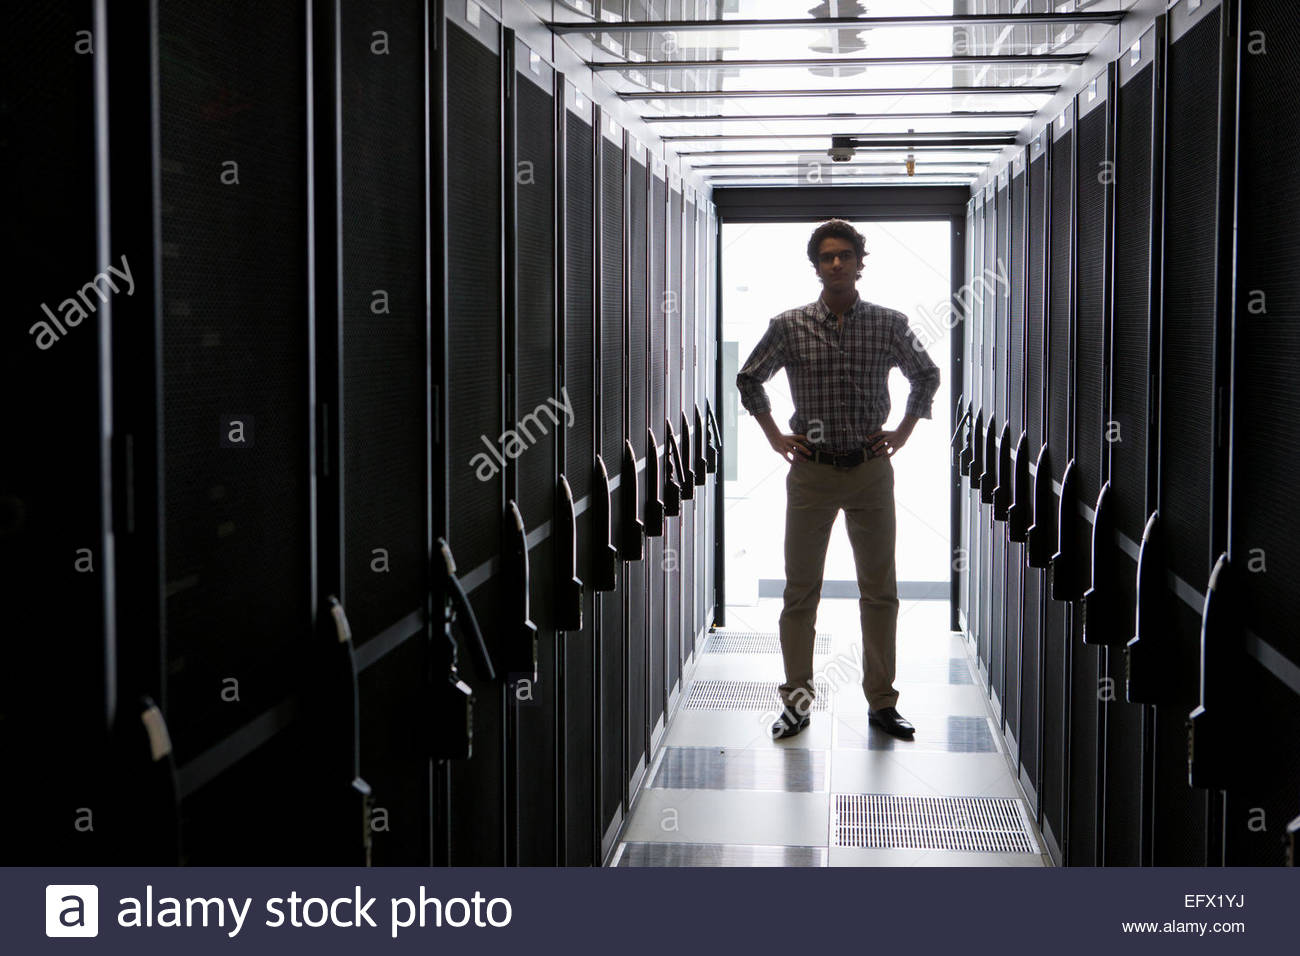 Technician standing in aisle of storage cabinets in data center - Stock Image